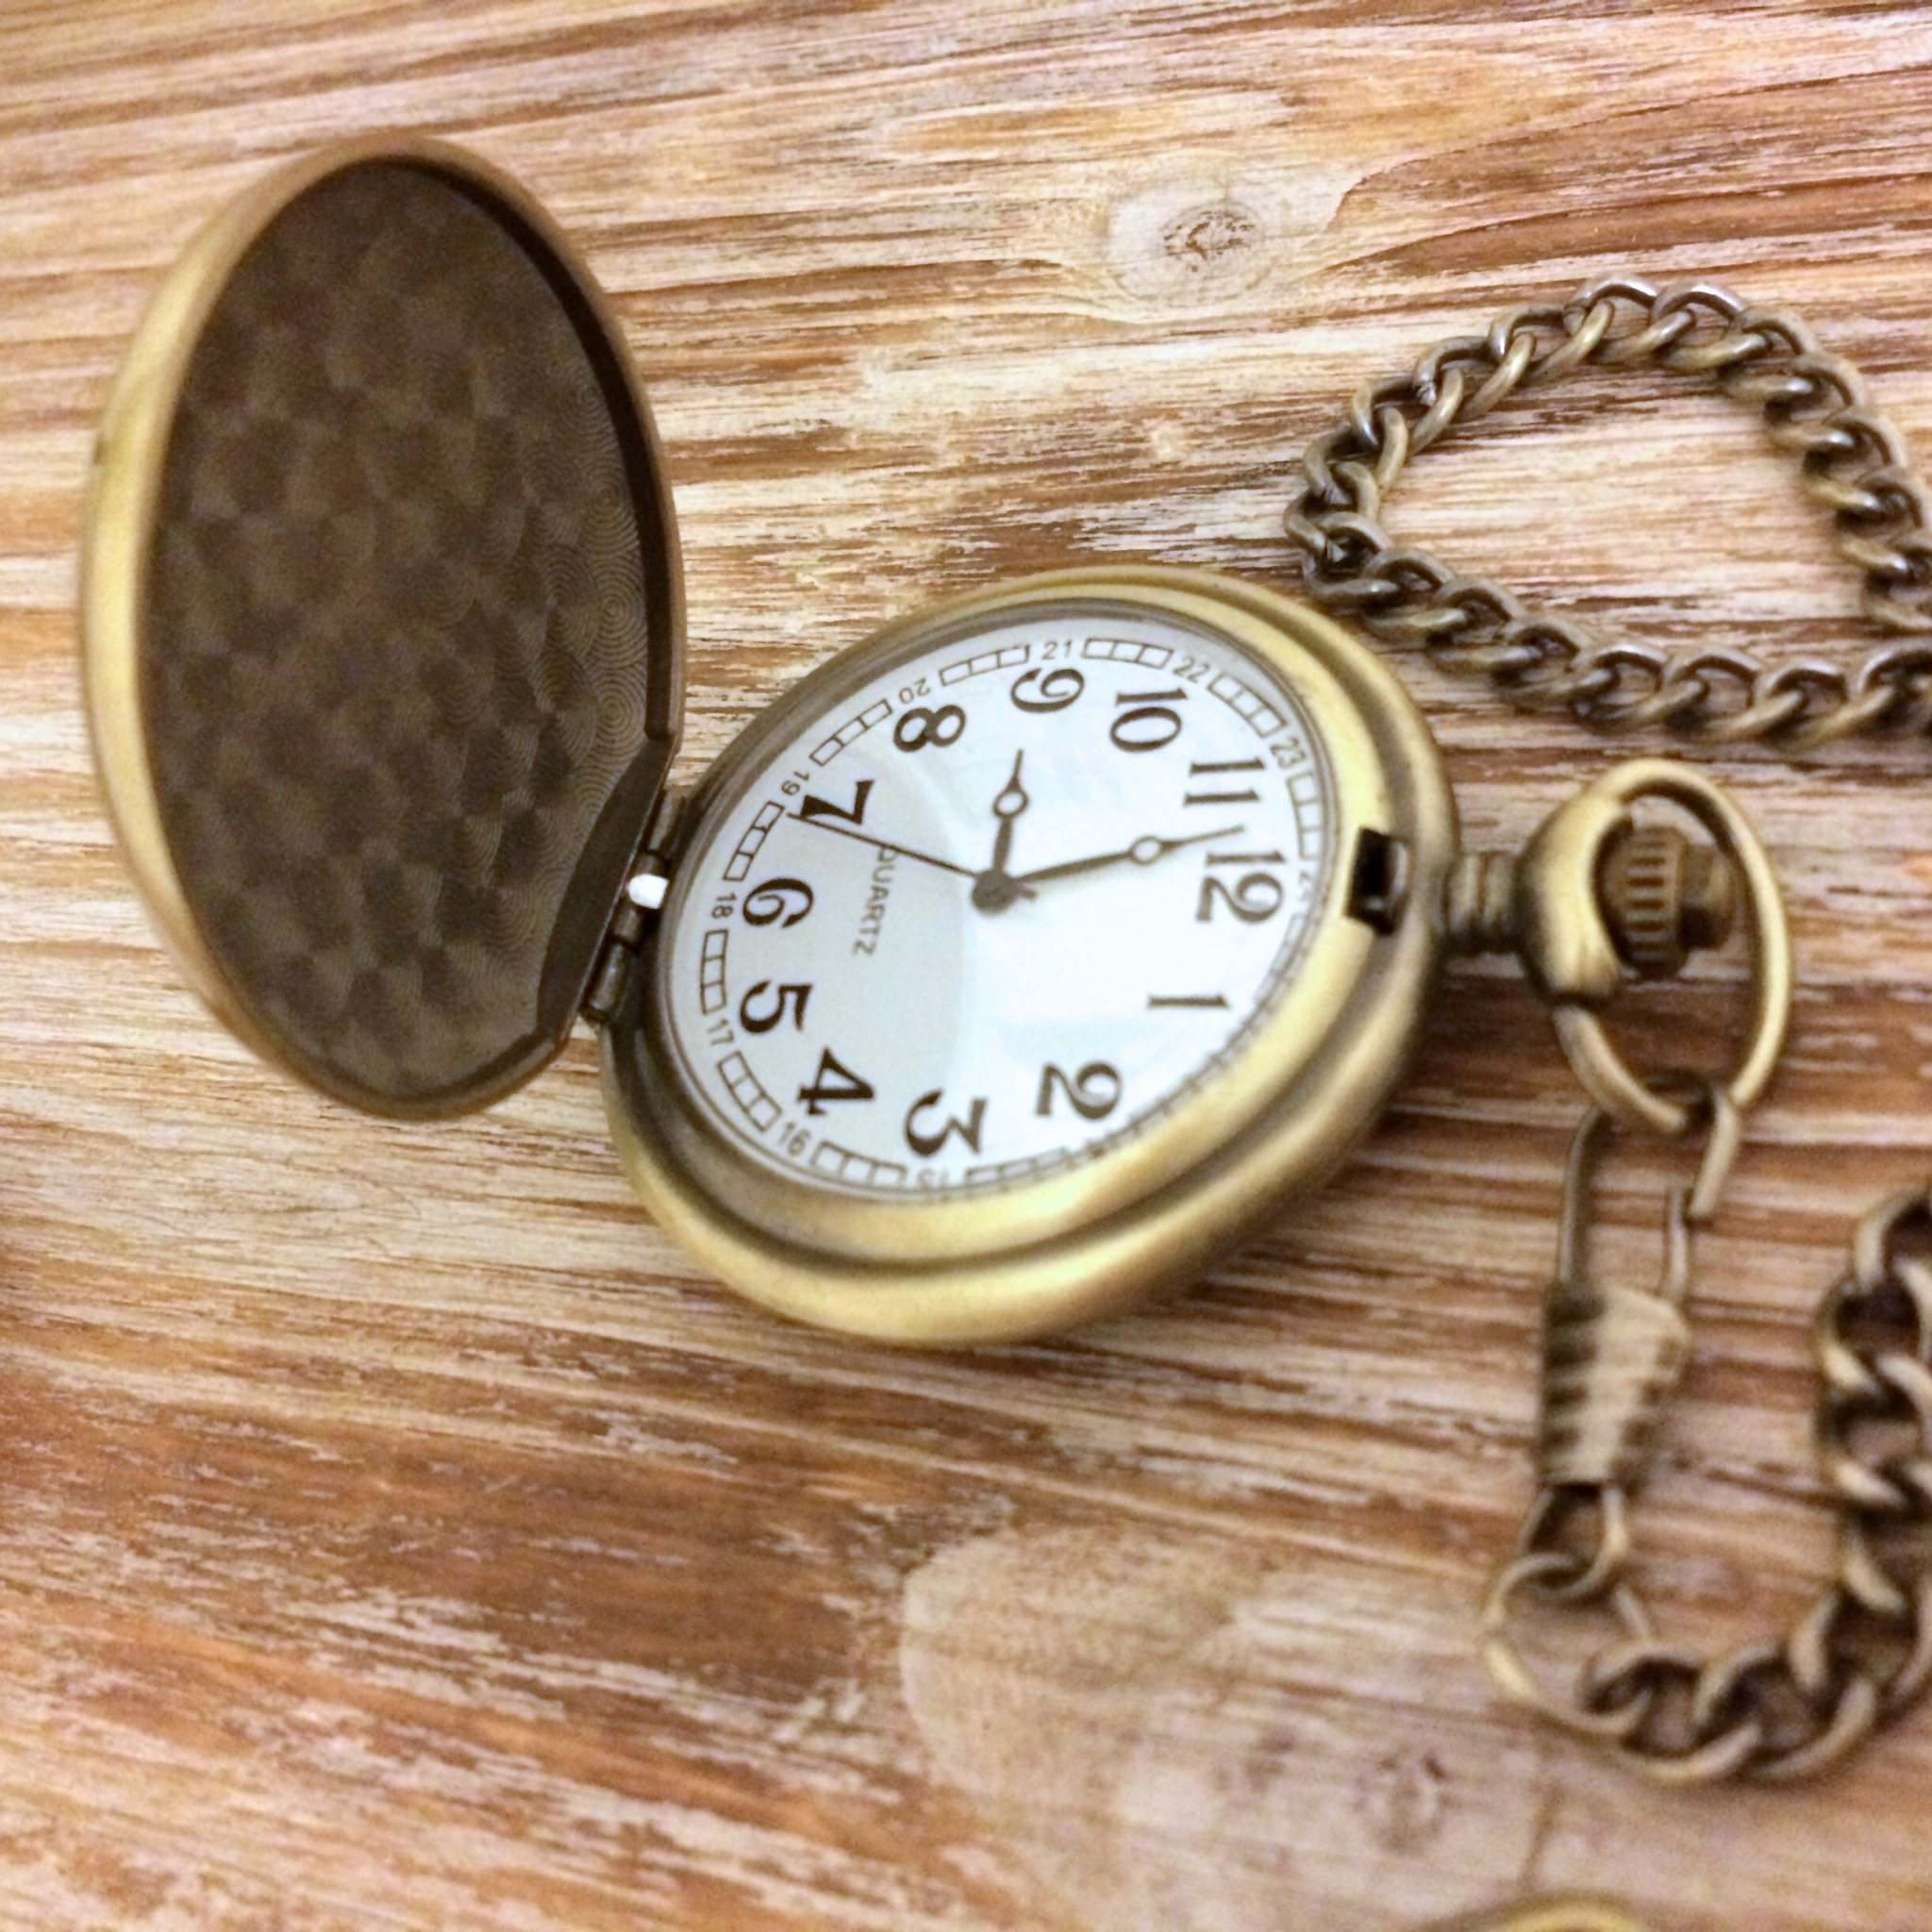 ef558be40 Men's Ecclesiastes 3:1 Pocket Watch - ellie & james - Online Store ...